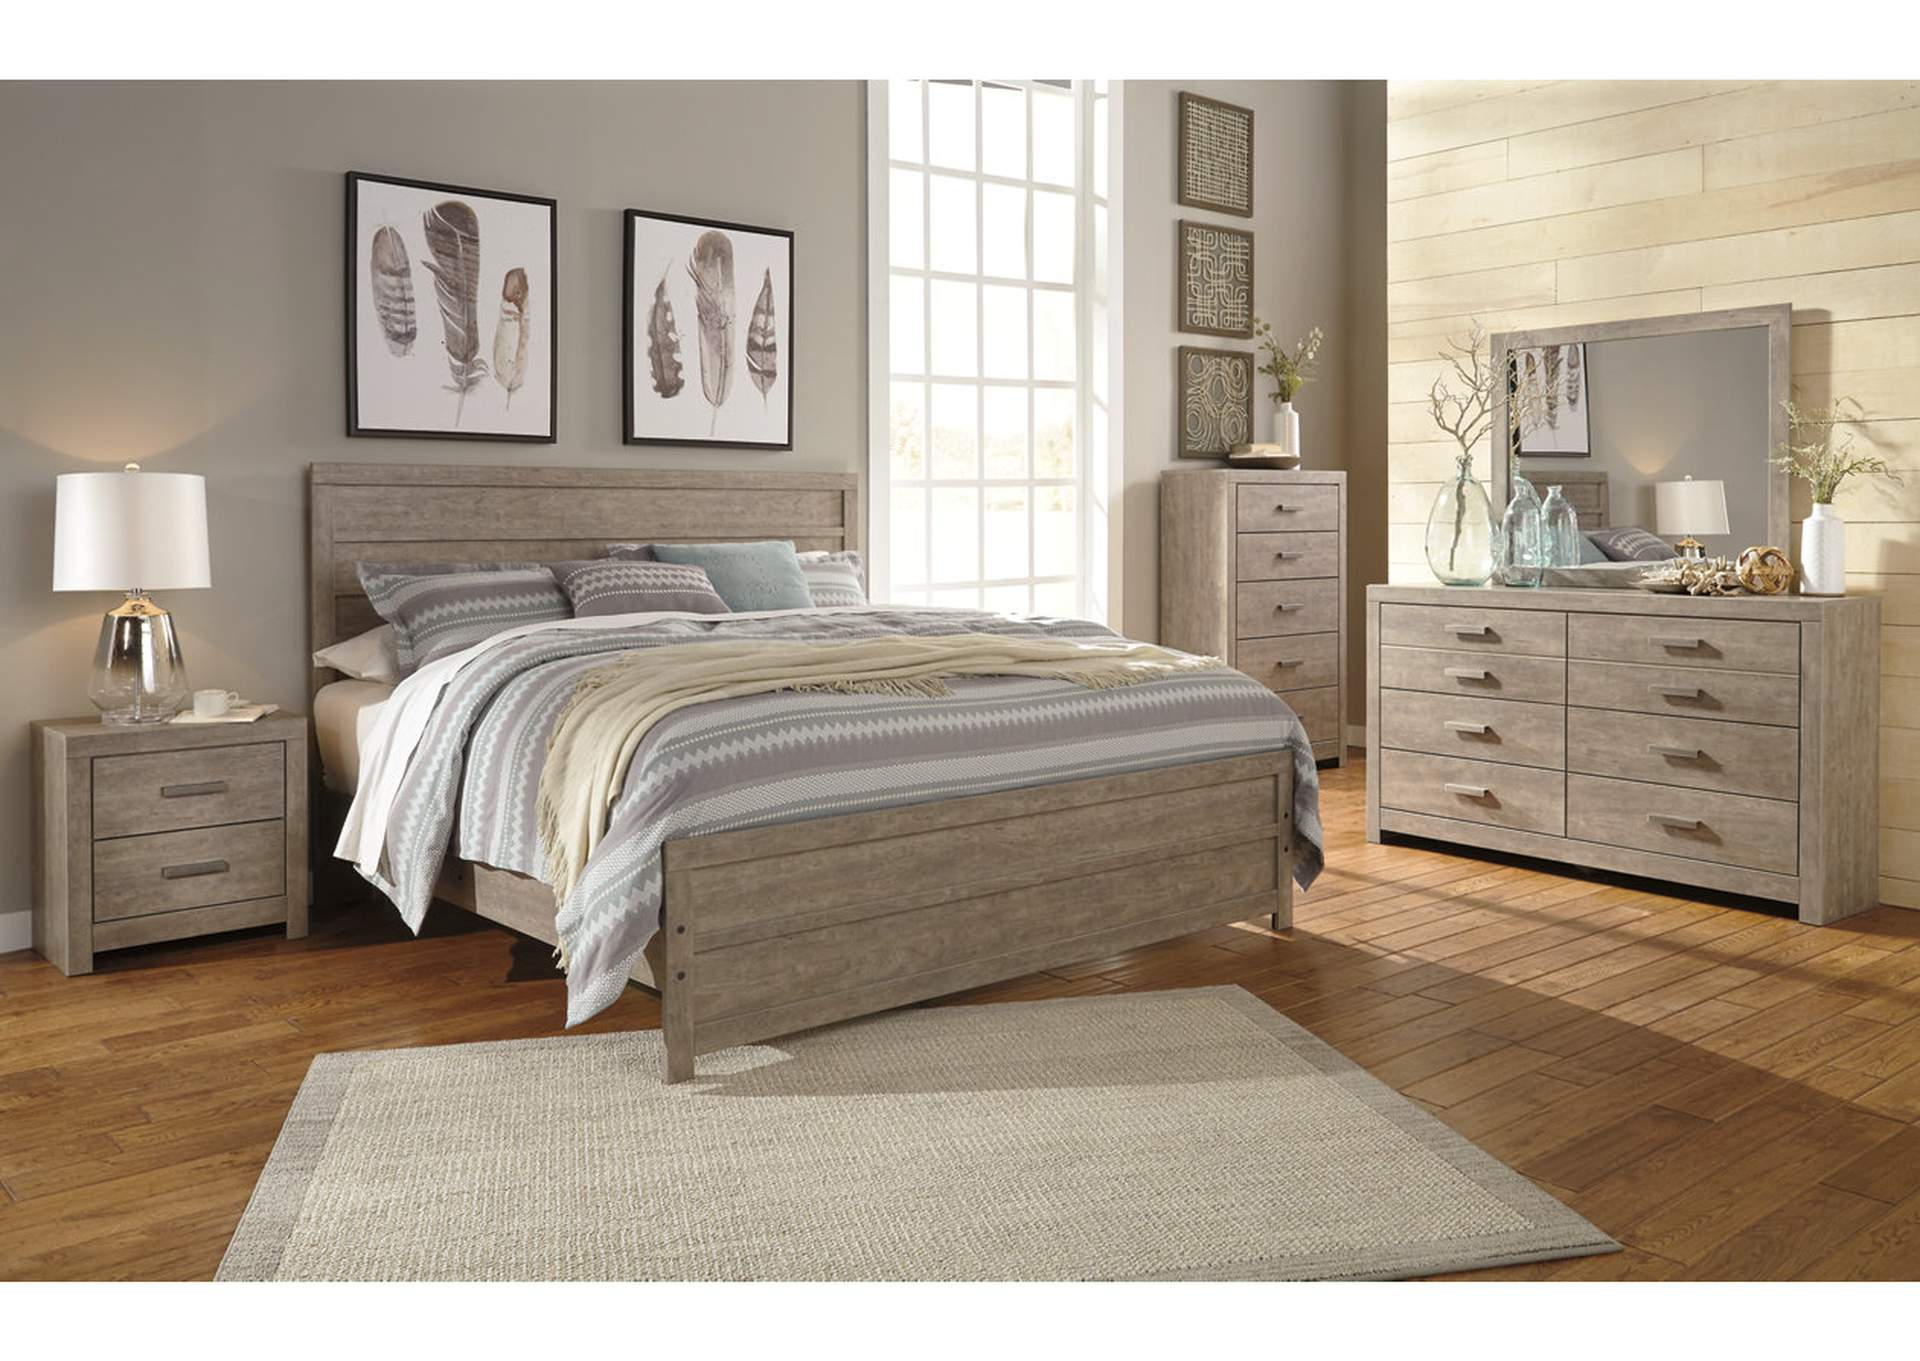 Culverbach Gray King Panel Bed w/Dresser & Mirror,Signature Design By Ashley